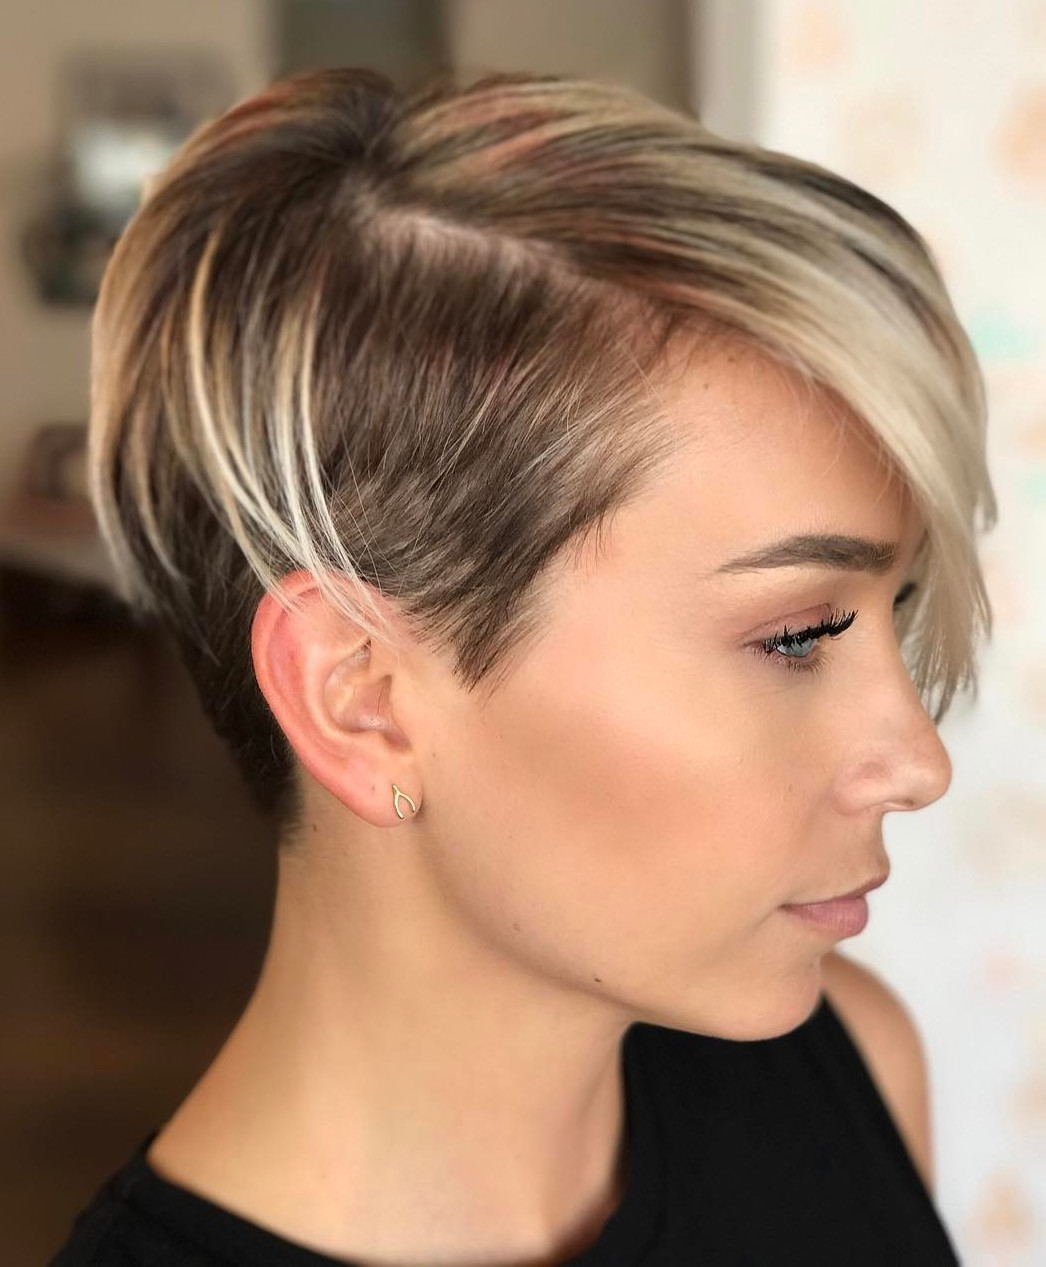 Katie holmes, is that you? 50 Best Trendy Short Hairstyles For Fine Hair Hair Adviser